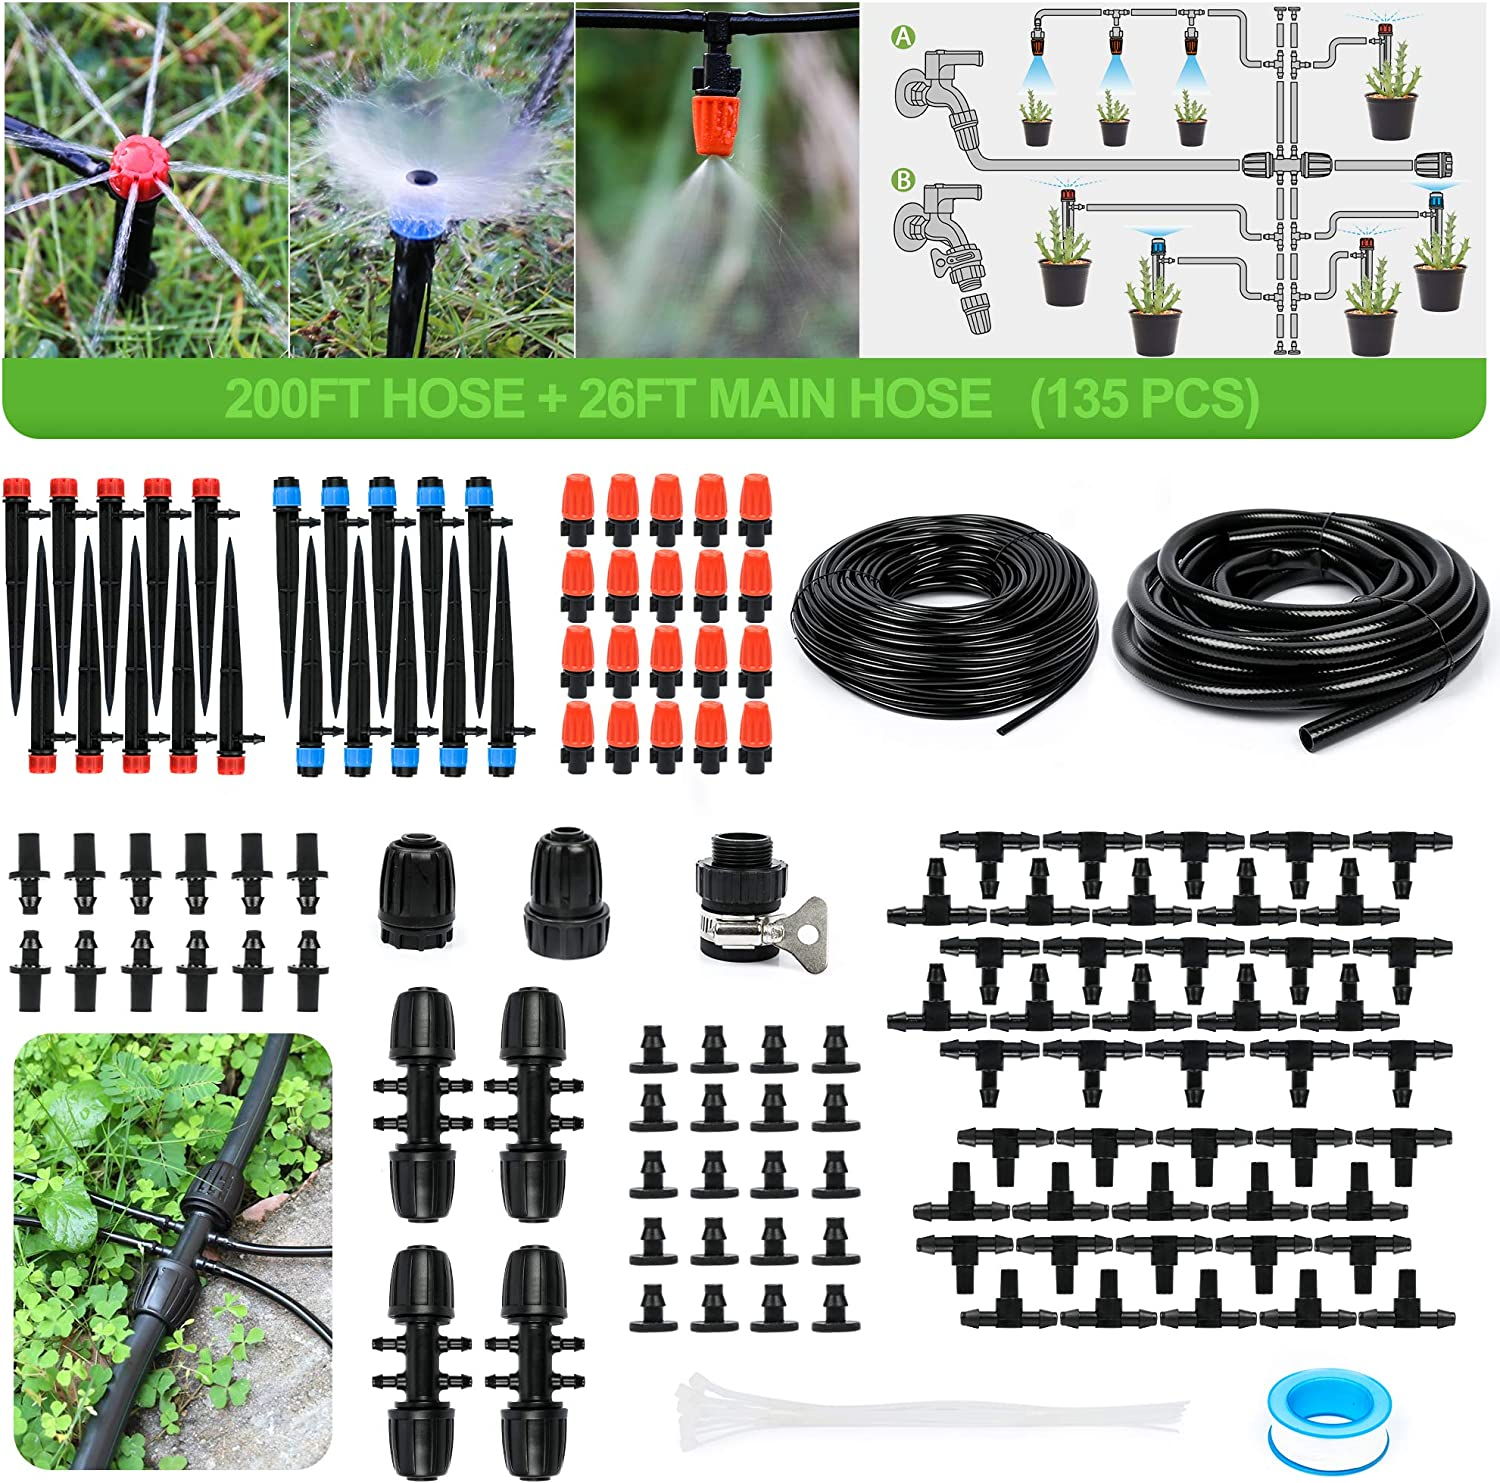 MIXC 226FT Greenhouse Micro Drip Irrigation Kit Automatic Patio Misting Plant Watering System with 1/4 inch 1/2 inch Blank Distribution Tubing Hose Adjustable Nozzle Emitters Sprinkler Barbed Fittings